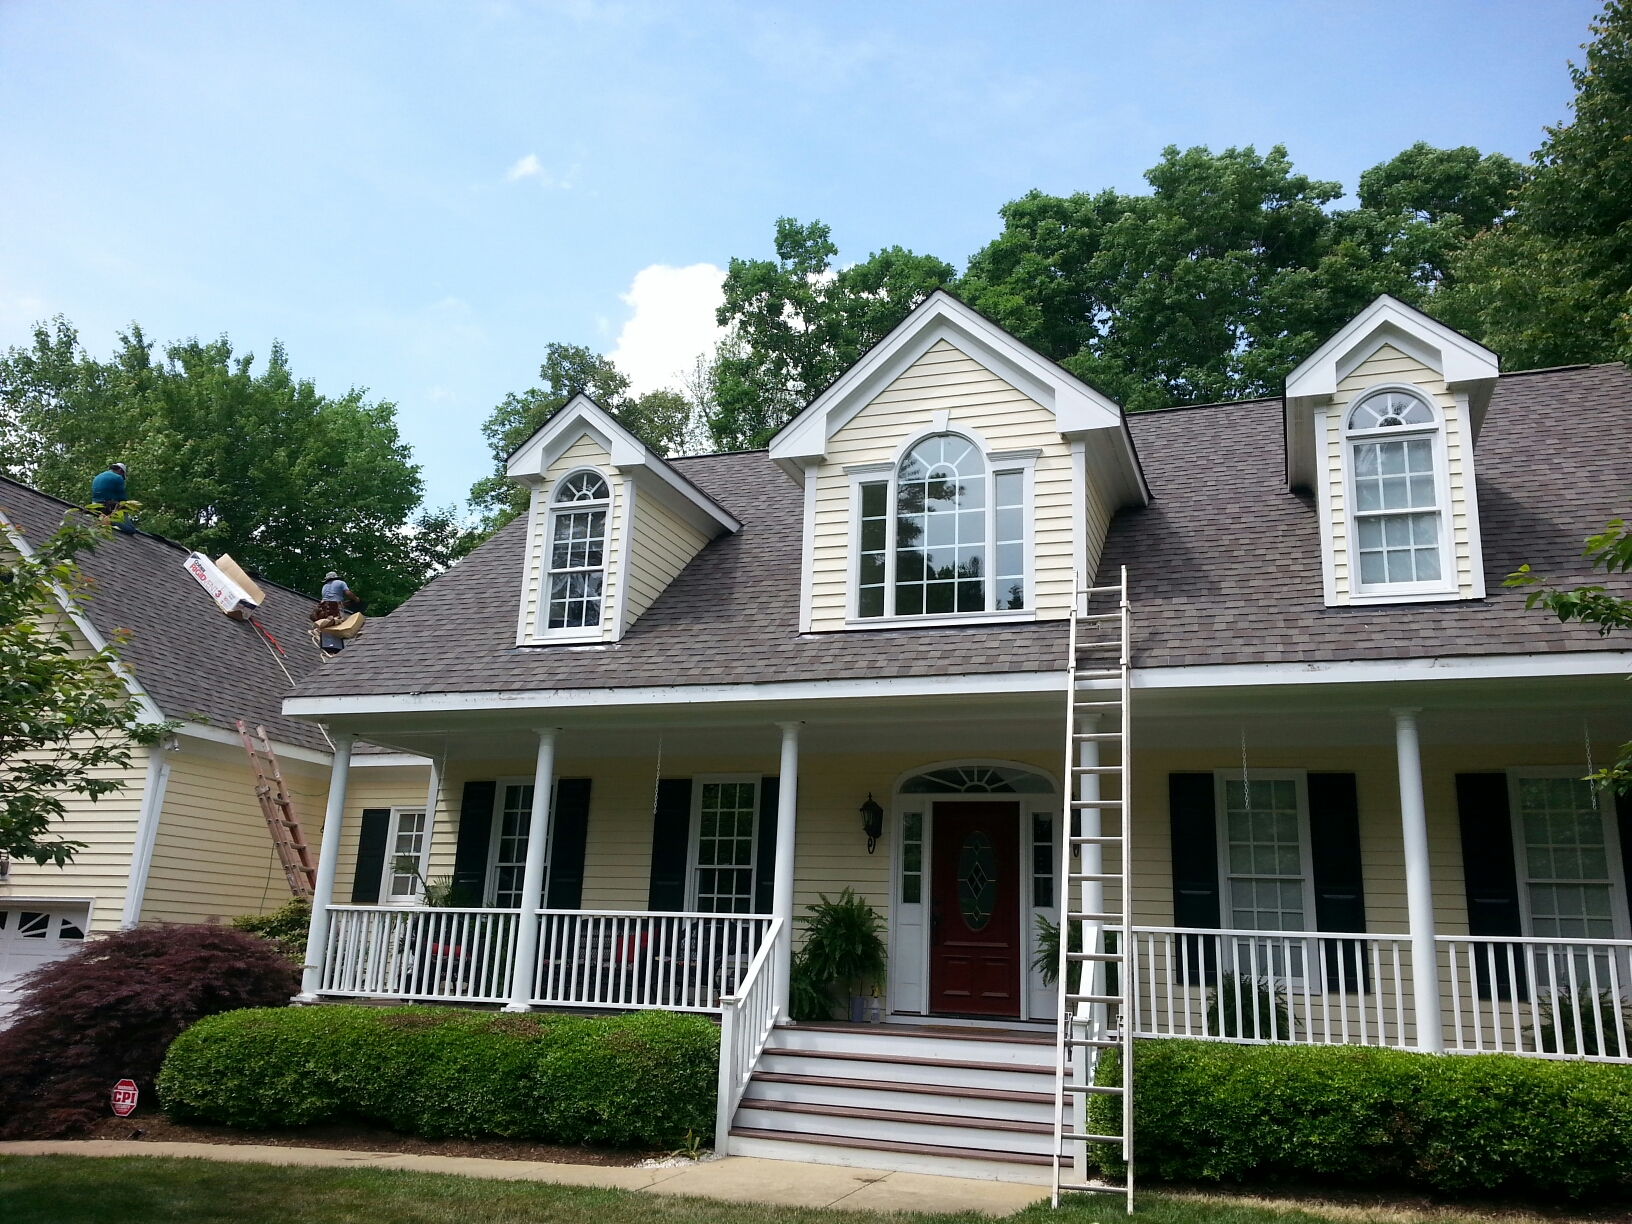 Cary, NC - Finishing touches on fabulous new roof! Spilman does it again. ....lifetime warranty on Certainteed Landmark Lifetime architectural shingle roof in Cary, NC...near Raleigh, NC.